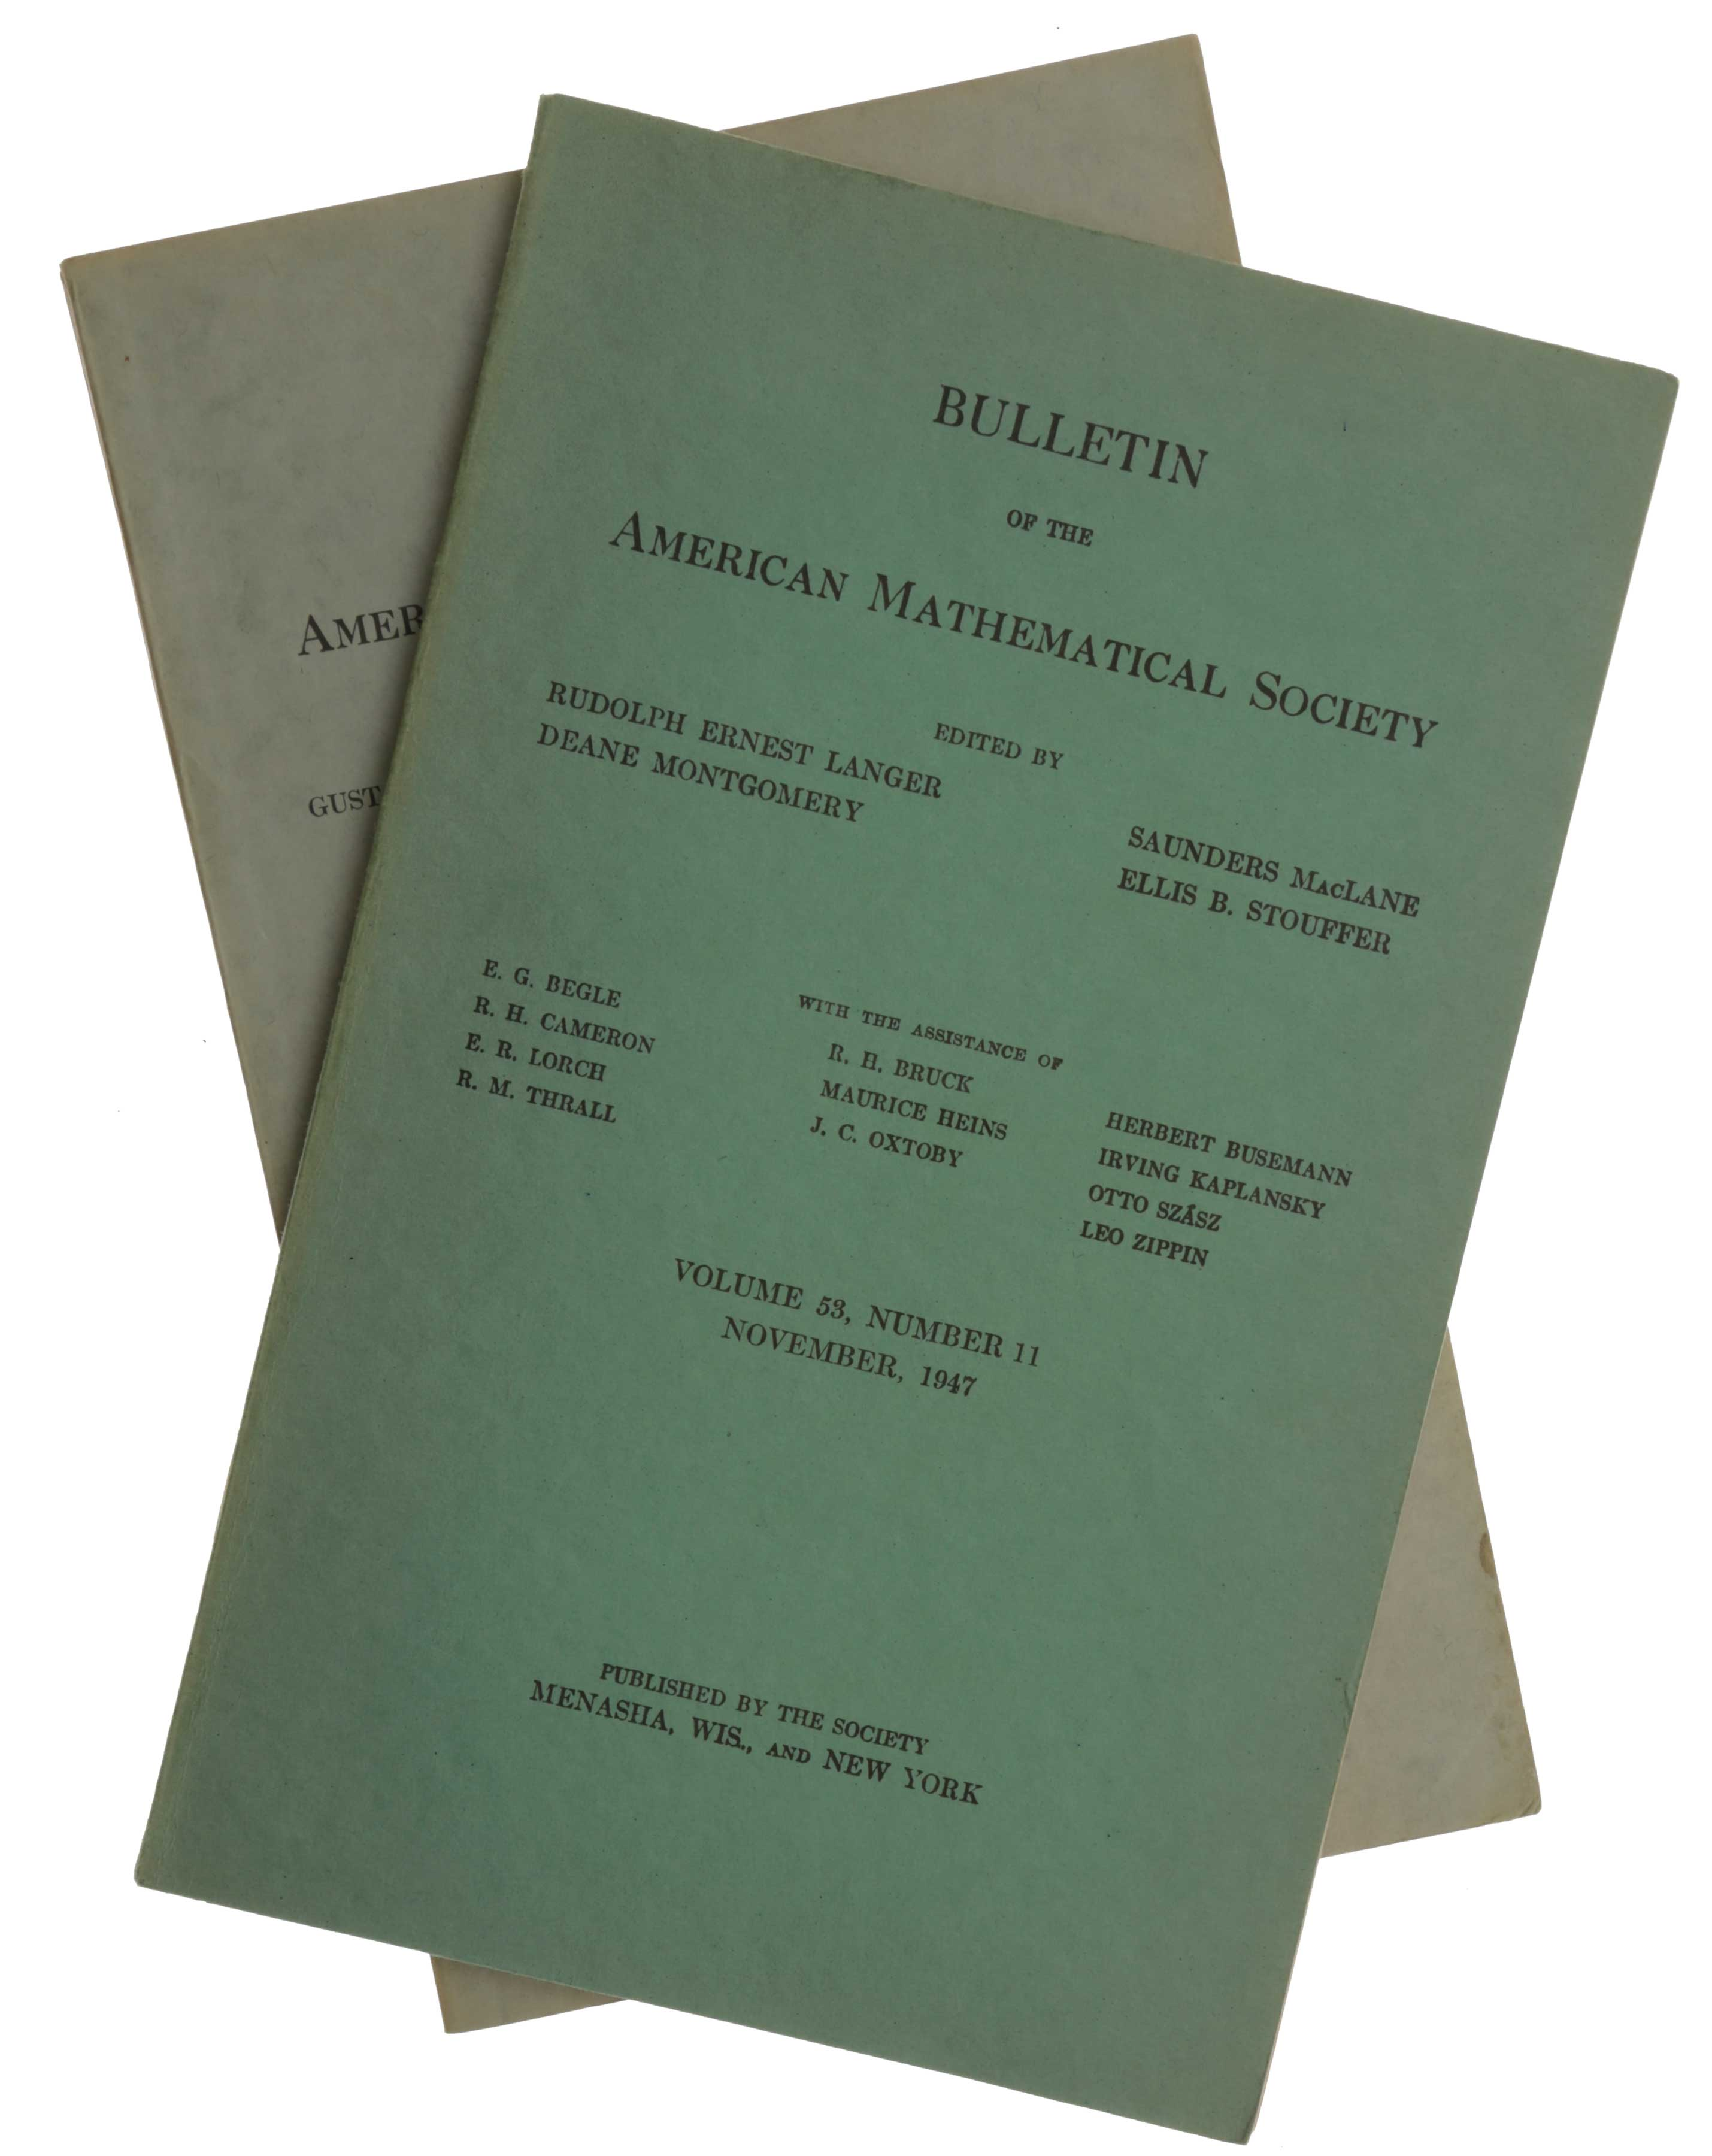 'Numerical Inverting of Matrices of High Order,' pp. 1021-1099 in Bulletin of the American Mathematical Society, Vol. 53, No. 11, November, 1947. [Offered with:] 'Numerical Inverting of Matrices of High Order II,' pp. 188-202 in Proceedings of the American Mathematical Society, Vol. 2, No. 2, April, 1951. John VON NEUMANN, Herman H. GOLDSTINE.